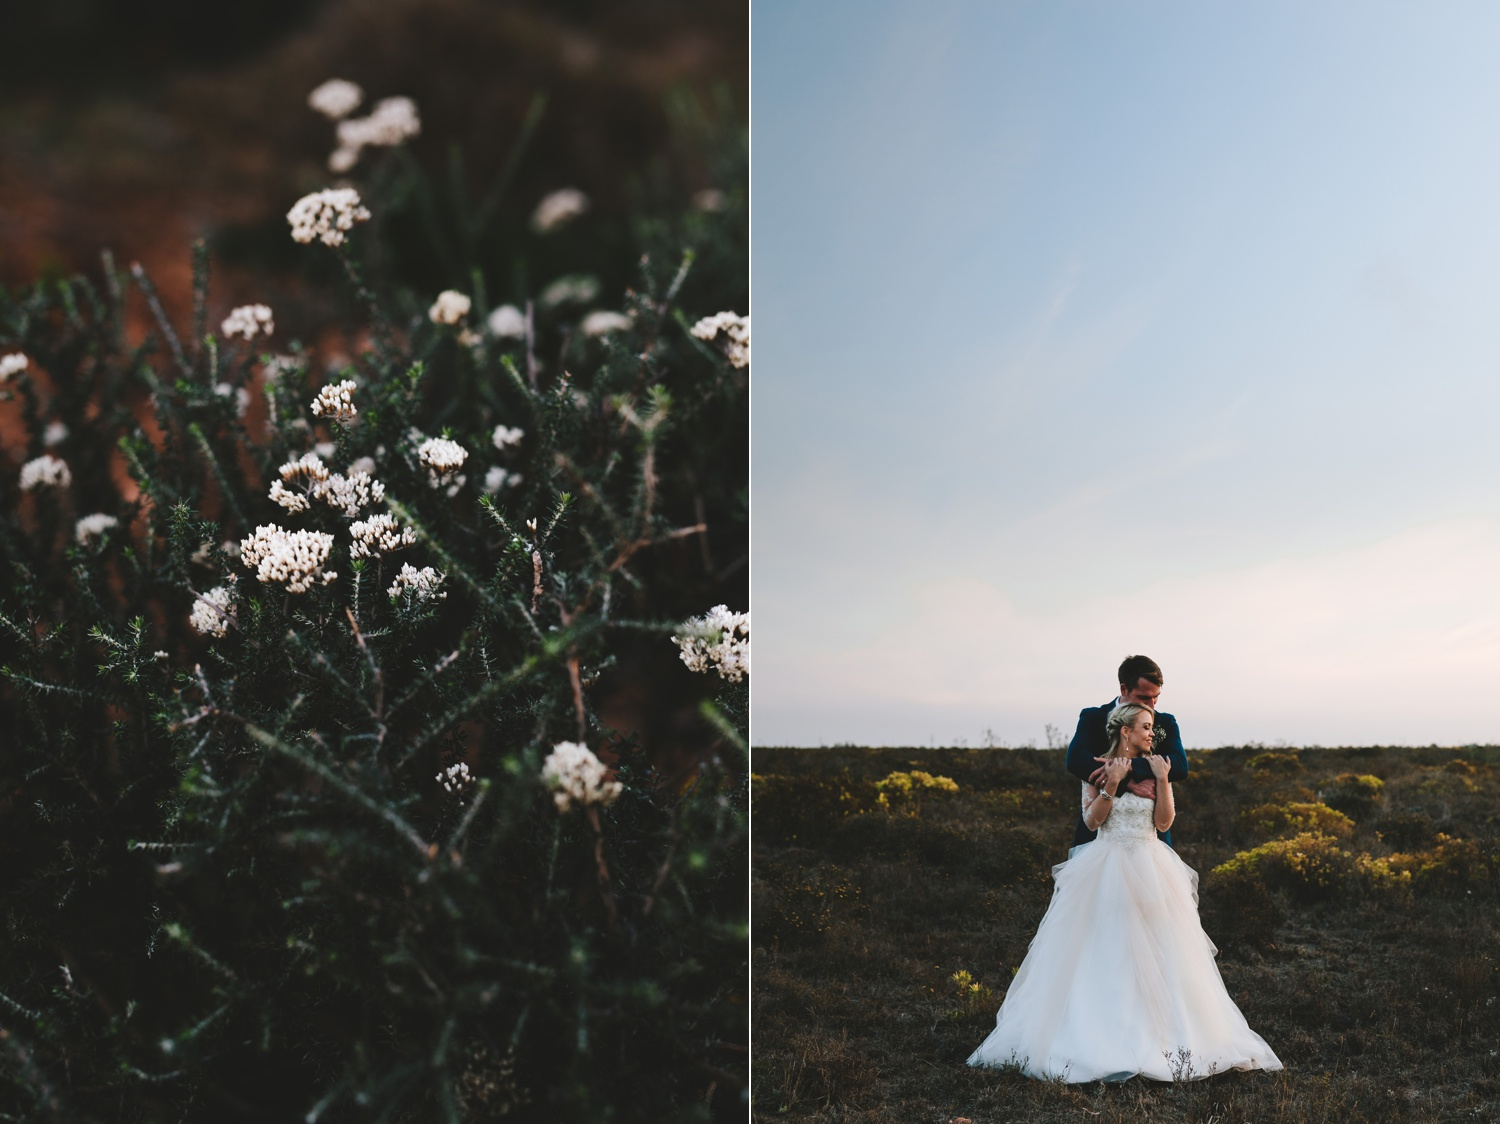 cathryn_warwick_wearecharlieray_hopewell_conservation_eastern_cape_wedding_0117.jpg